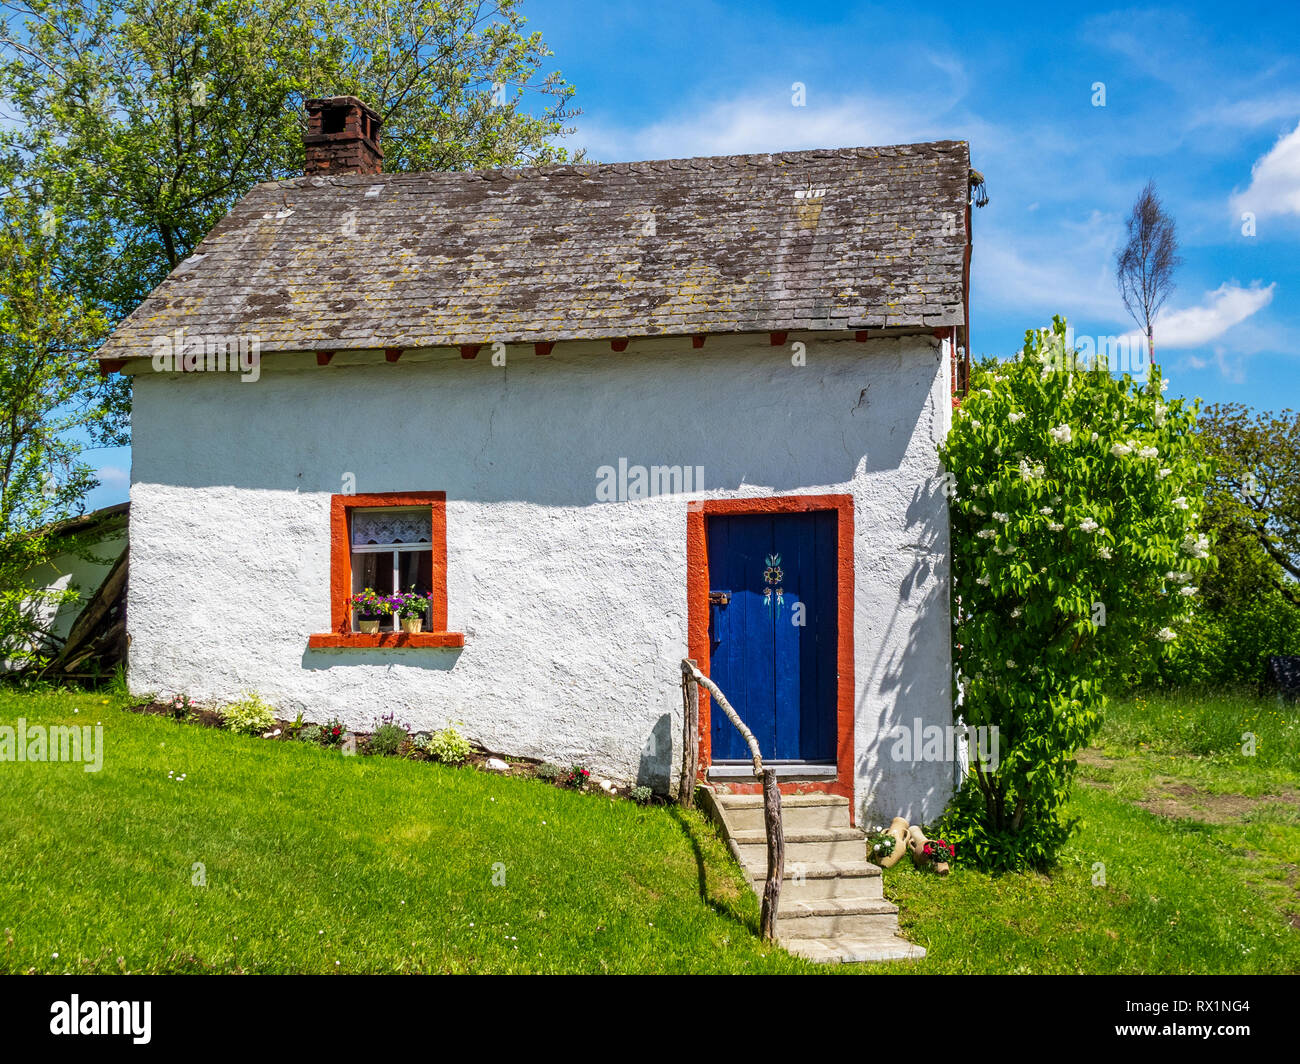 Beautiful cottage in Herresbach, Germany on a sunny summer day, a maypole or Maibaum in the distance - Stock Image